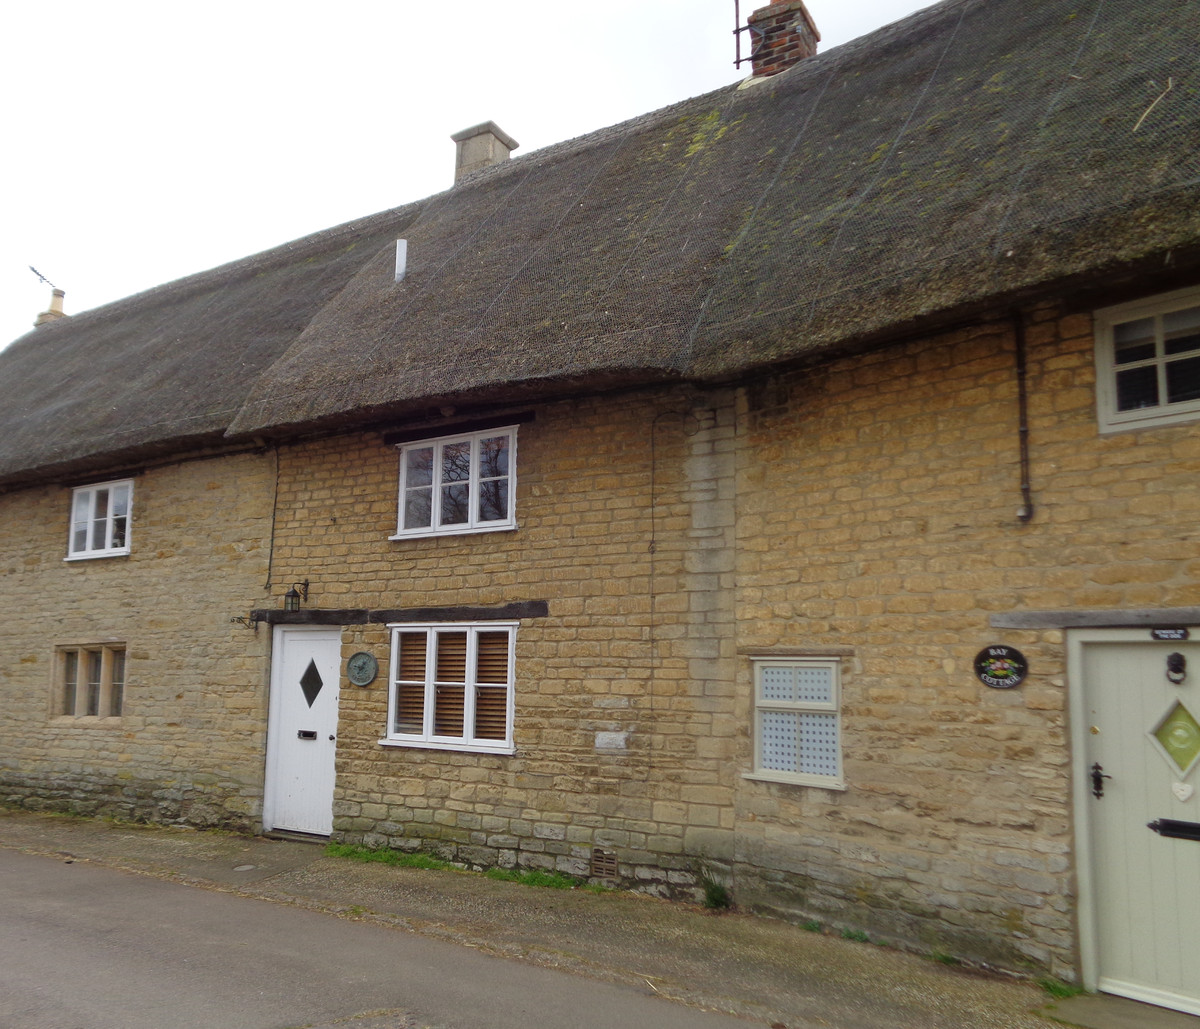 POLEBROOK  SOLD - MORE NEEDED